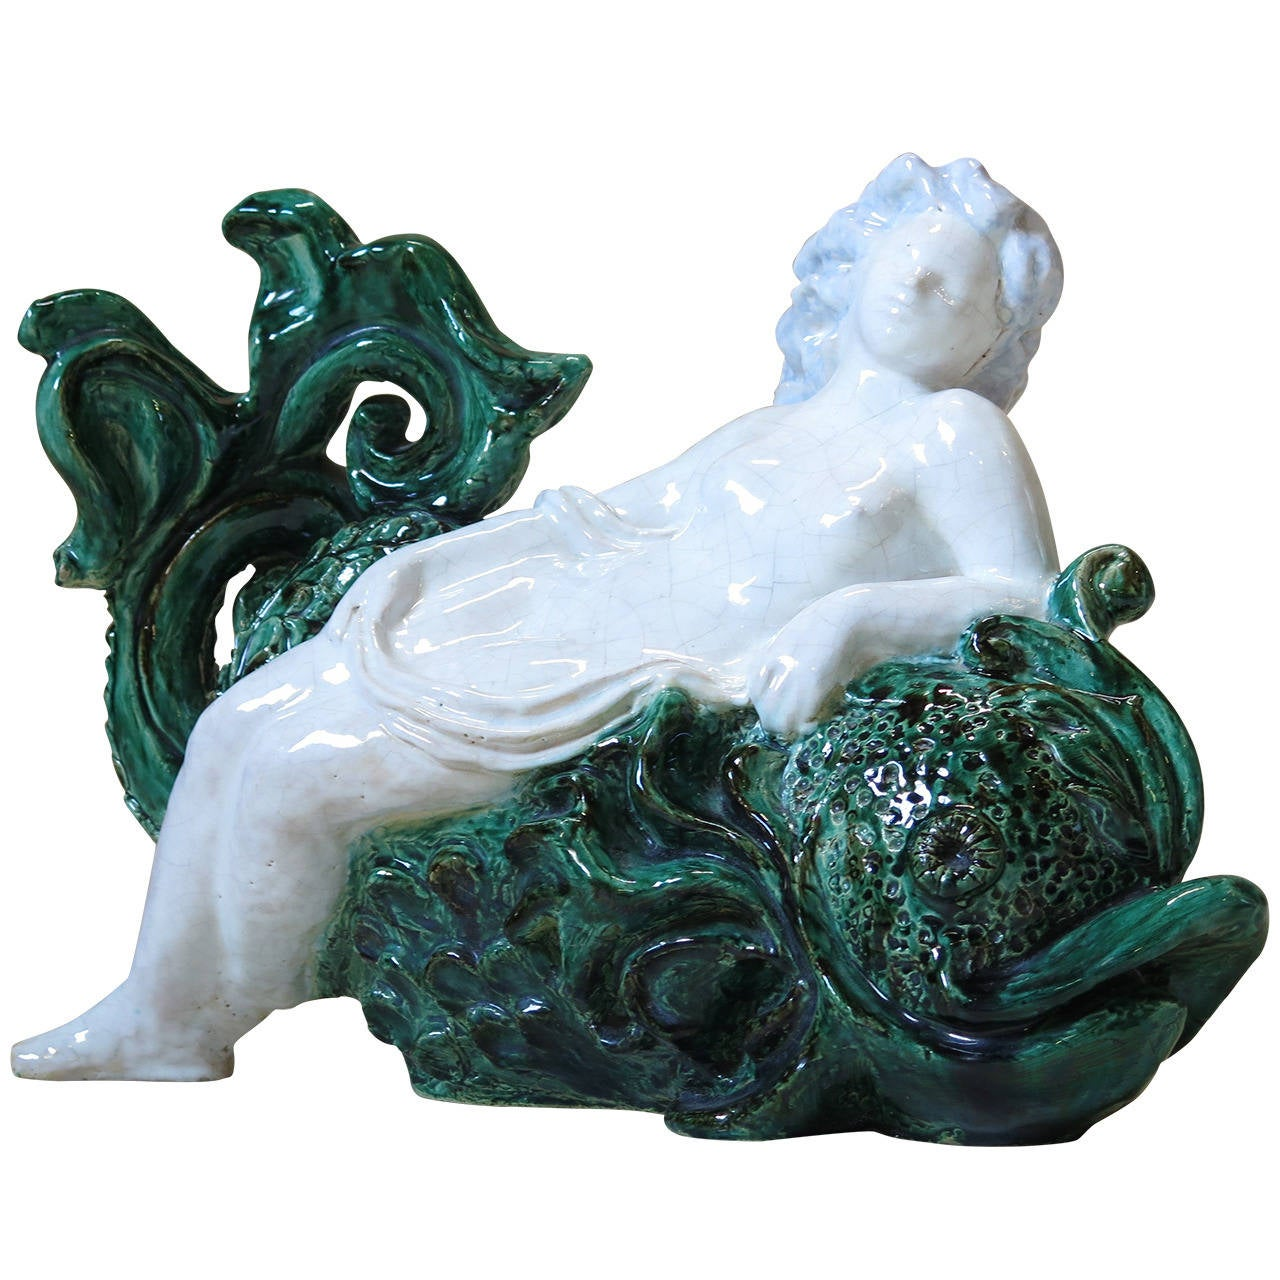 French Art Deco Glazed Ceramic Woman and Dolphin Sculpture For Sale